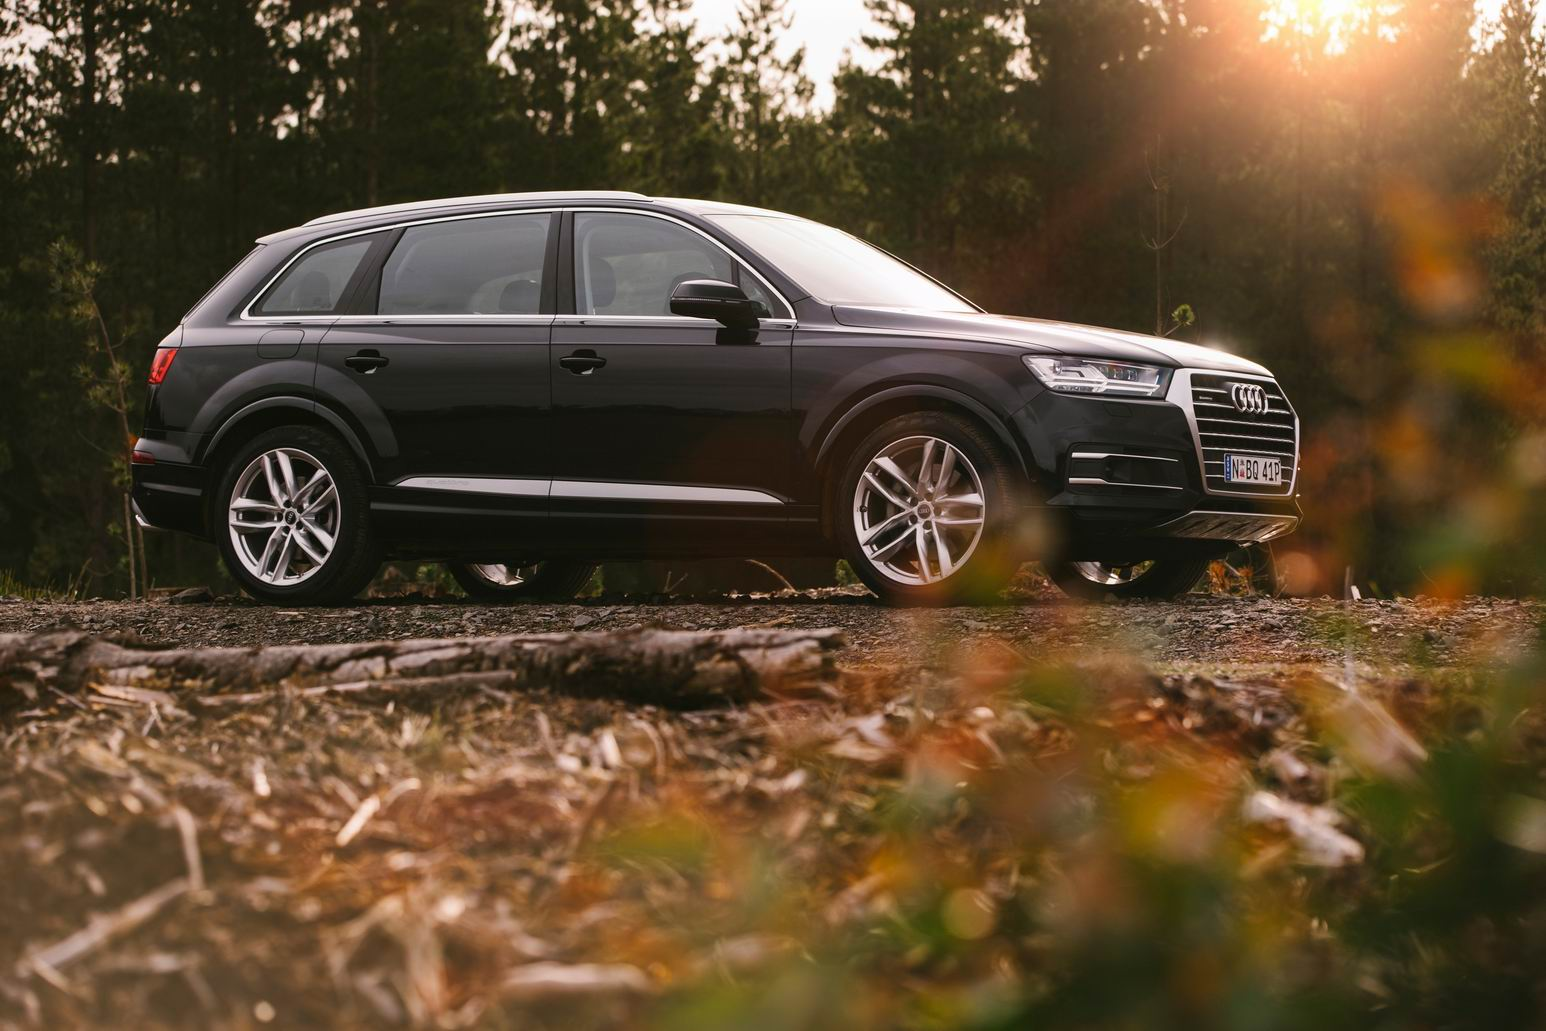 Join the queue for the Audi Q7